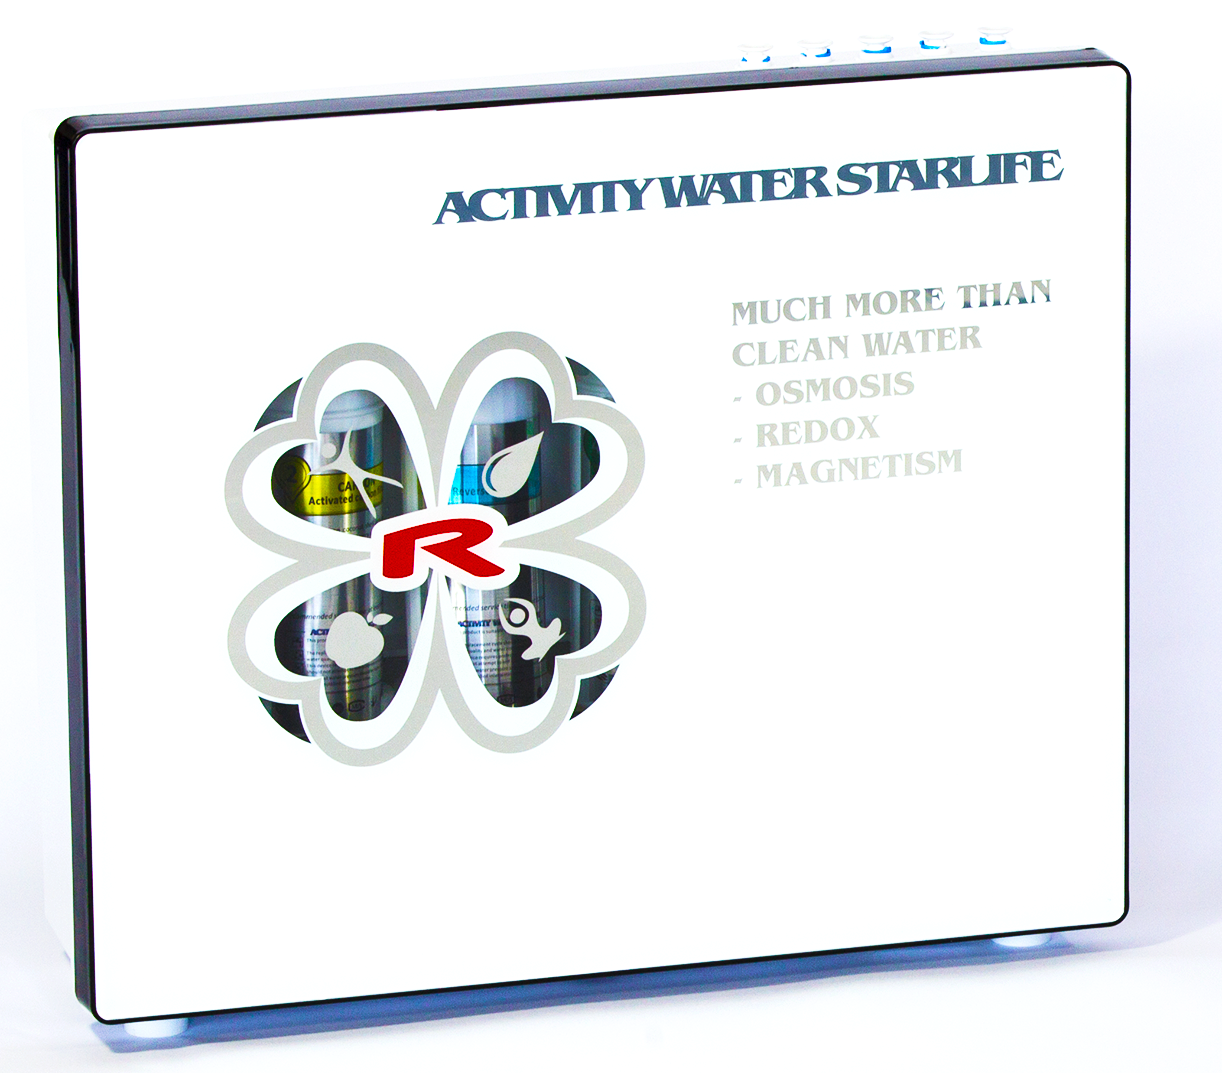 Activity_Water_STARLIFE_device.PNG